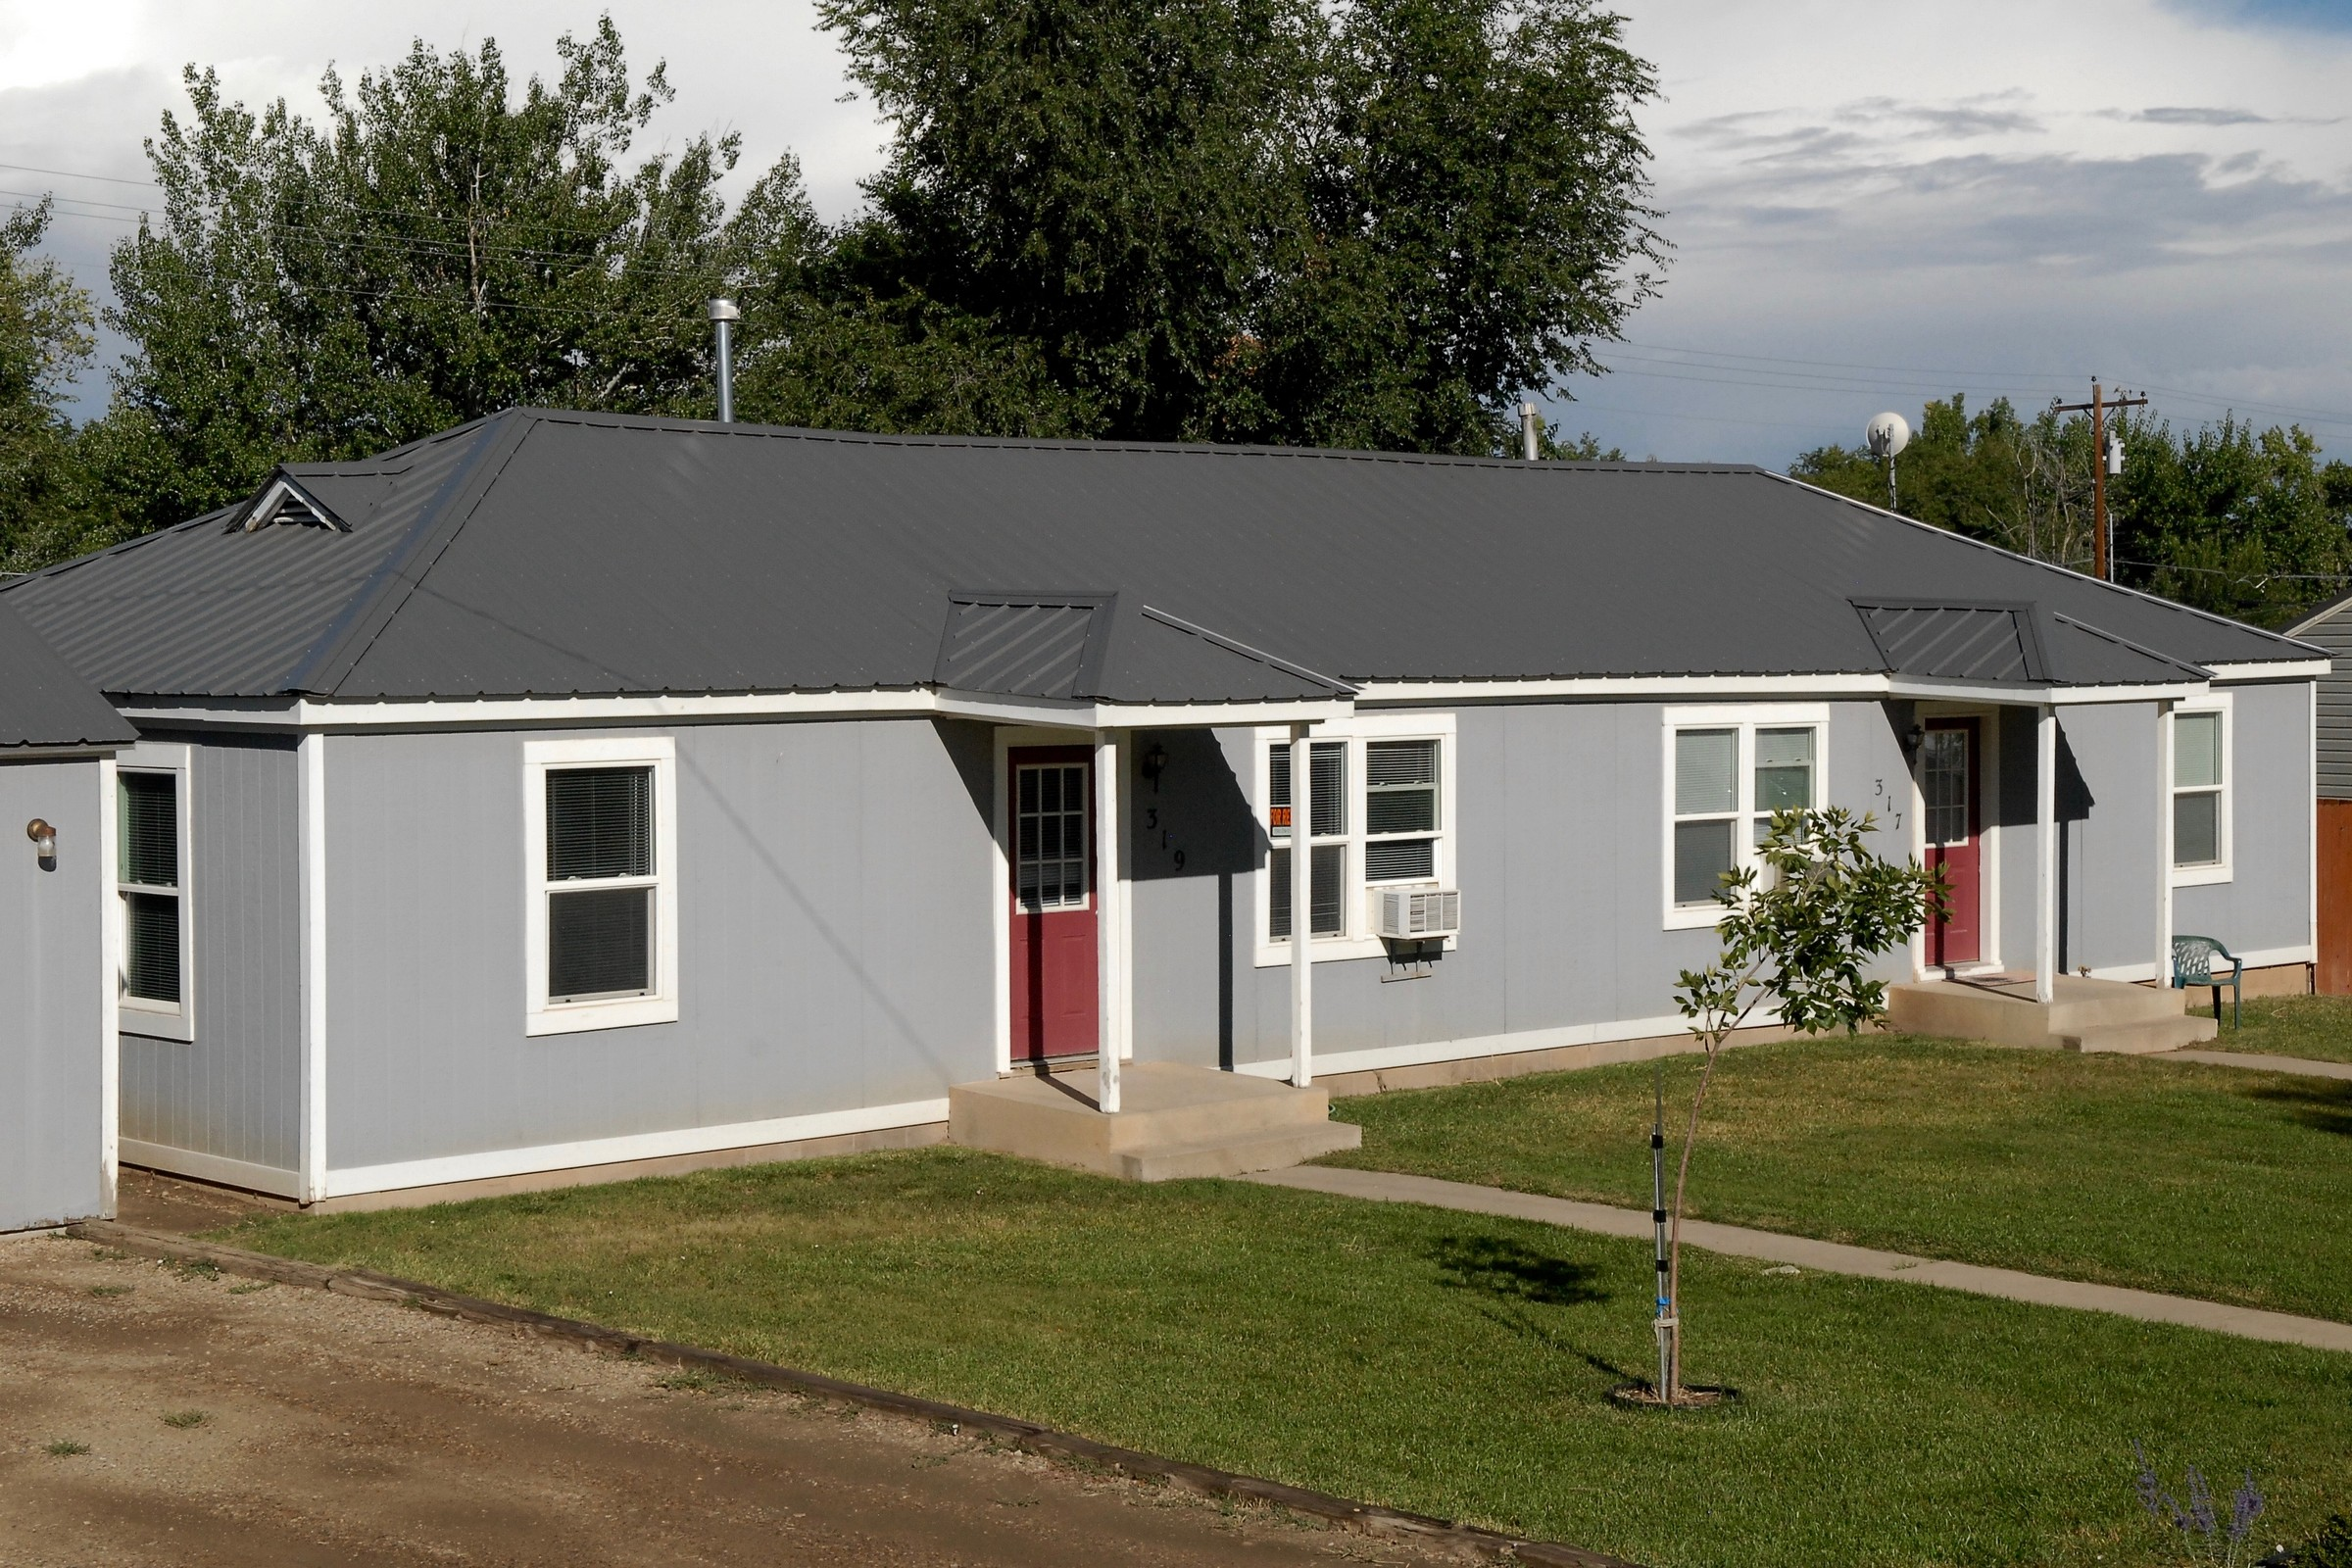 319 S Sunset Ave, Rangely, CO 81648